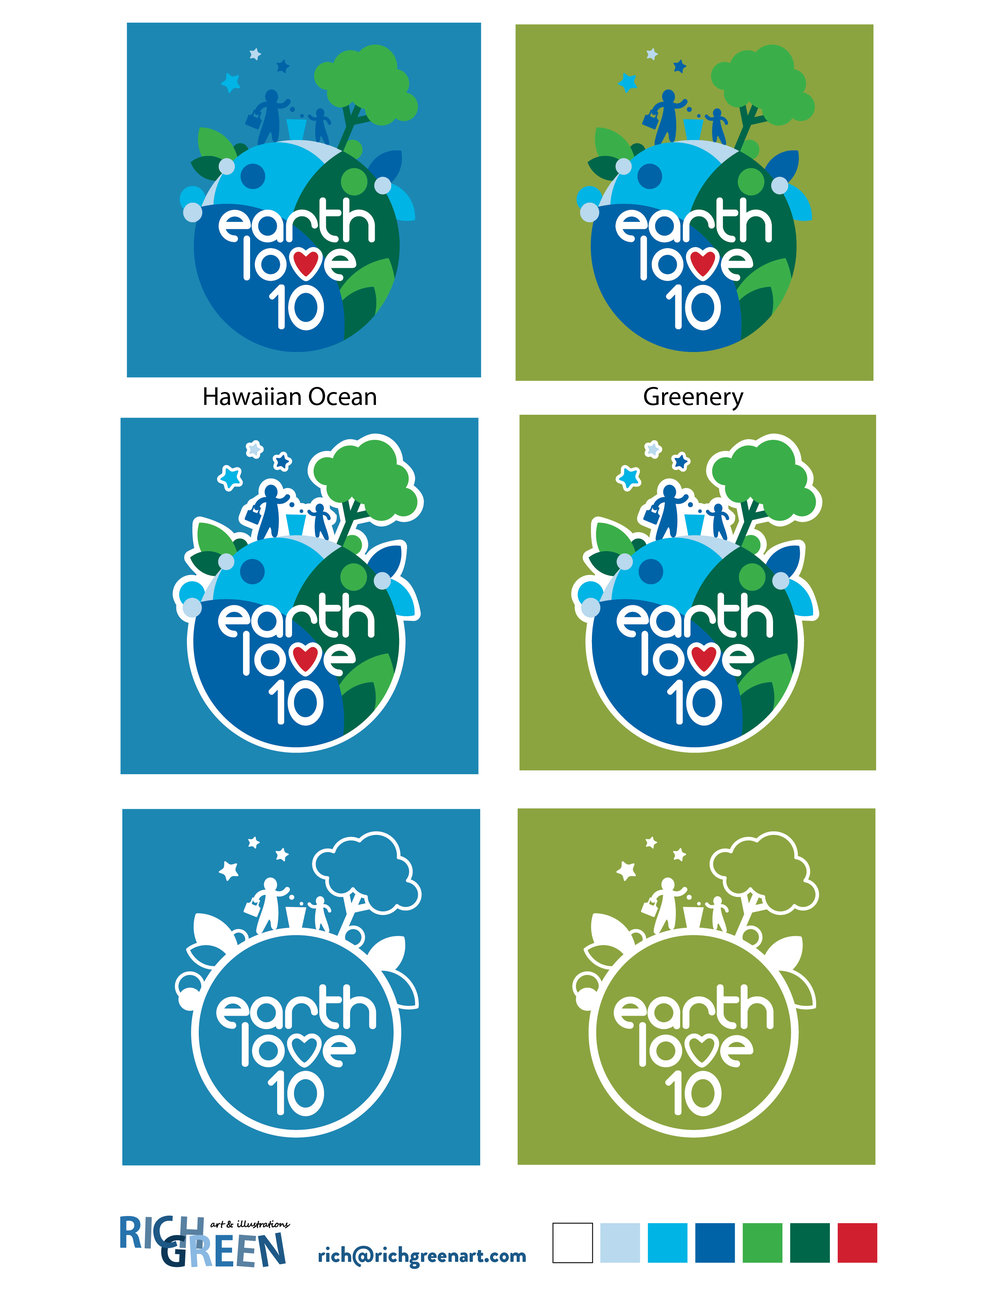 Earth Love 10 Concepts v02 01_Color Mockups.jpg